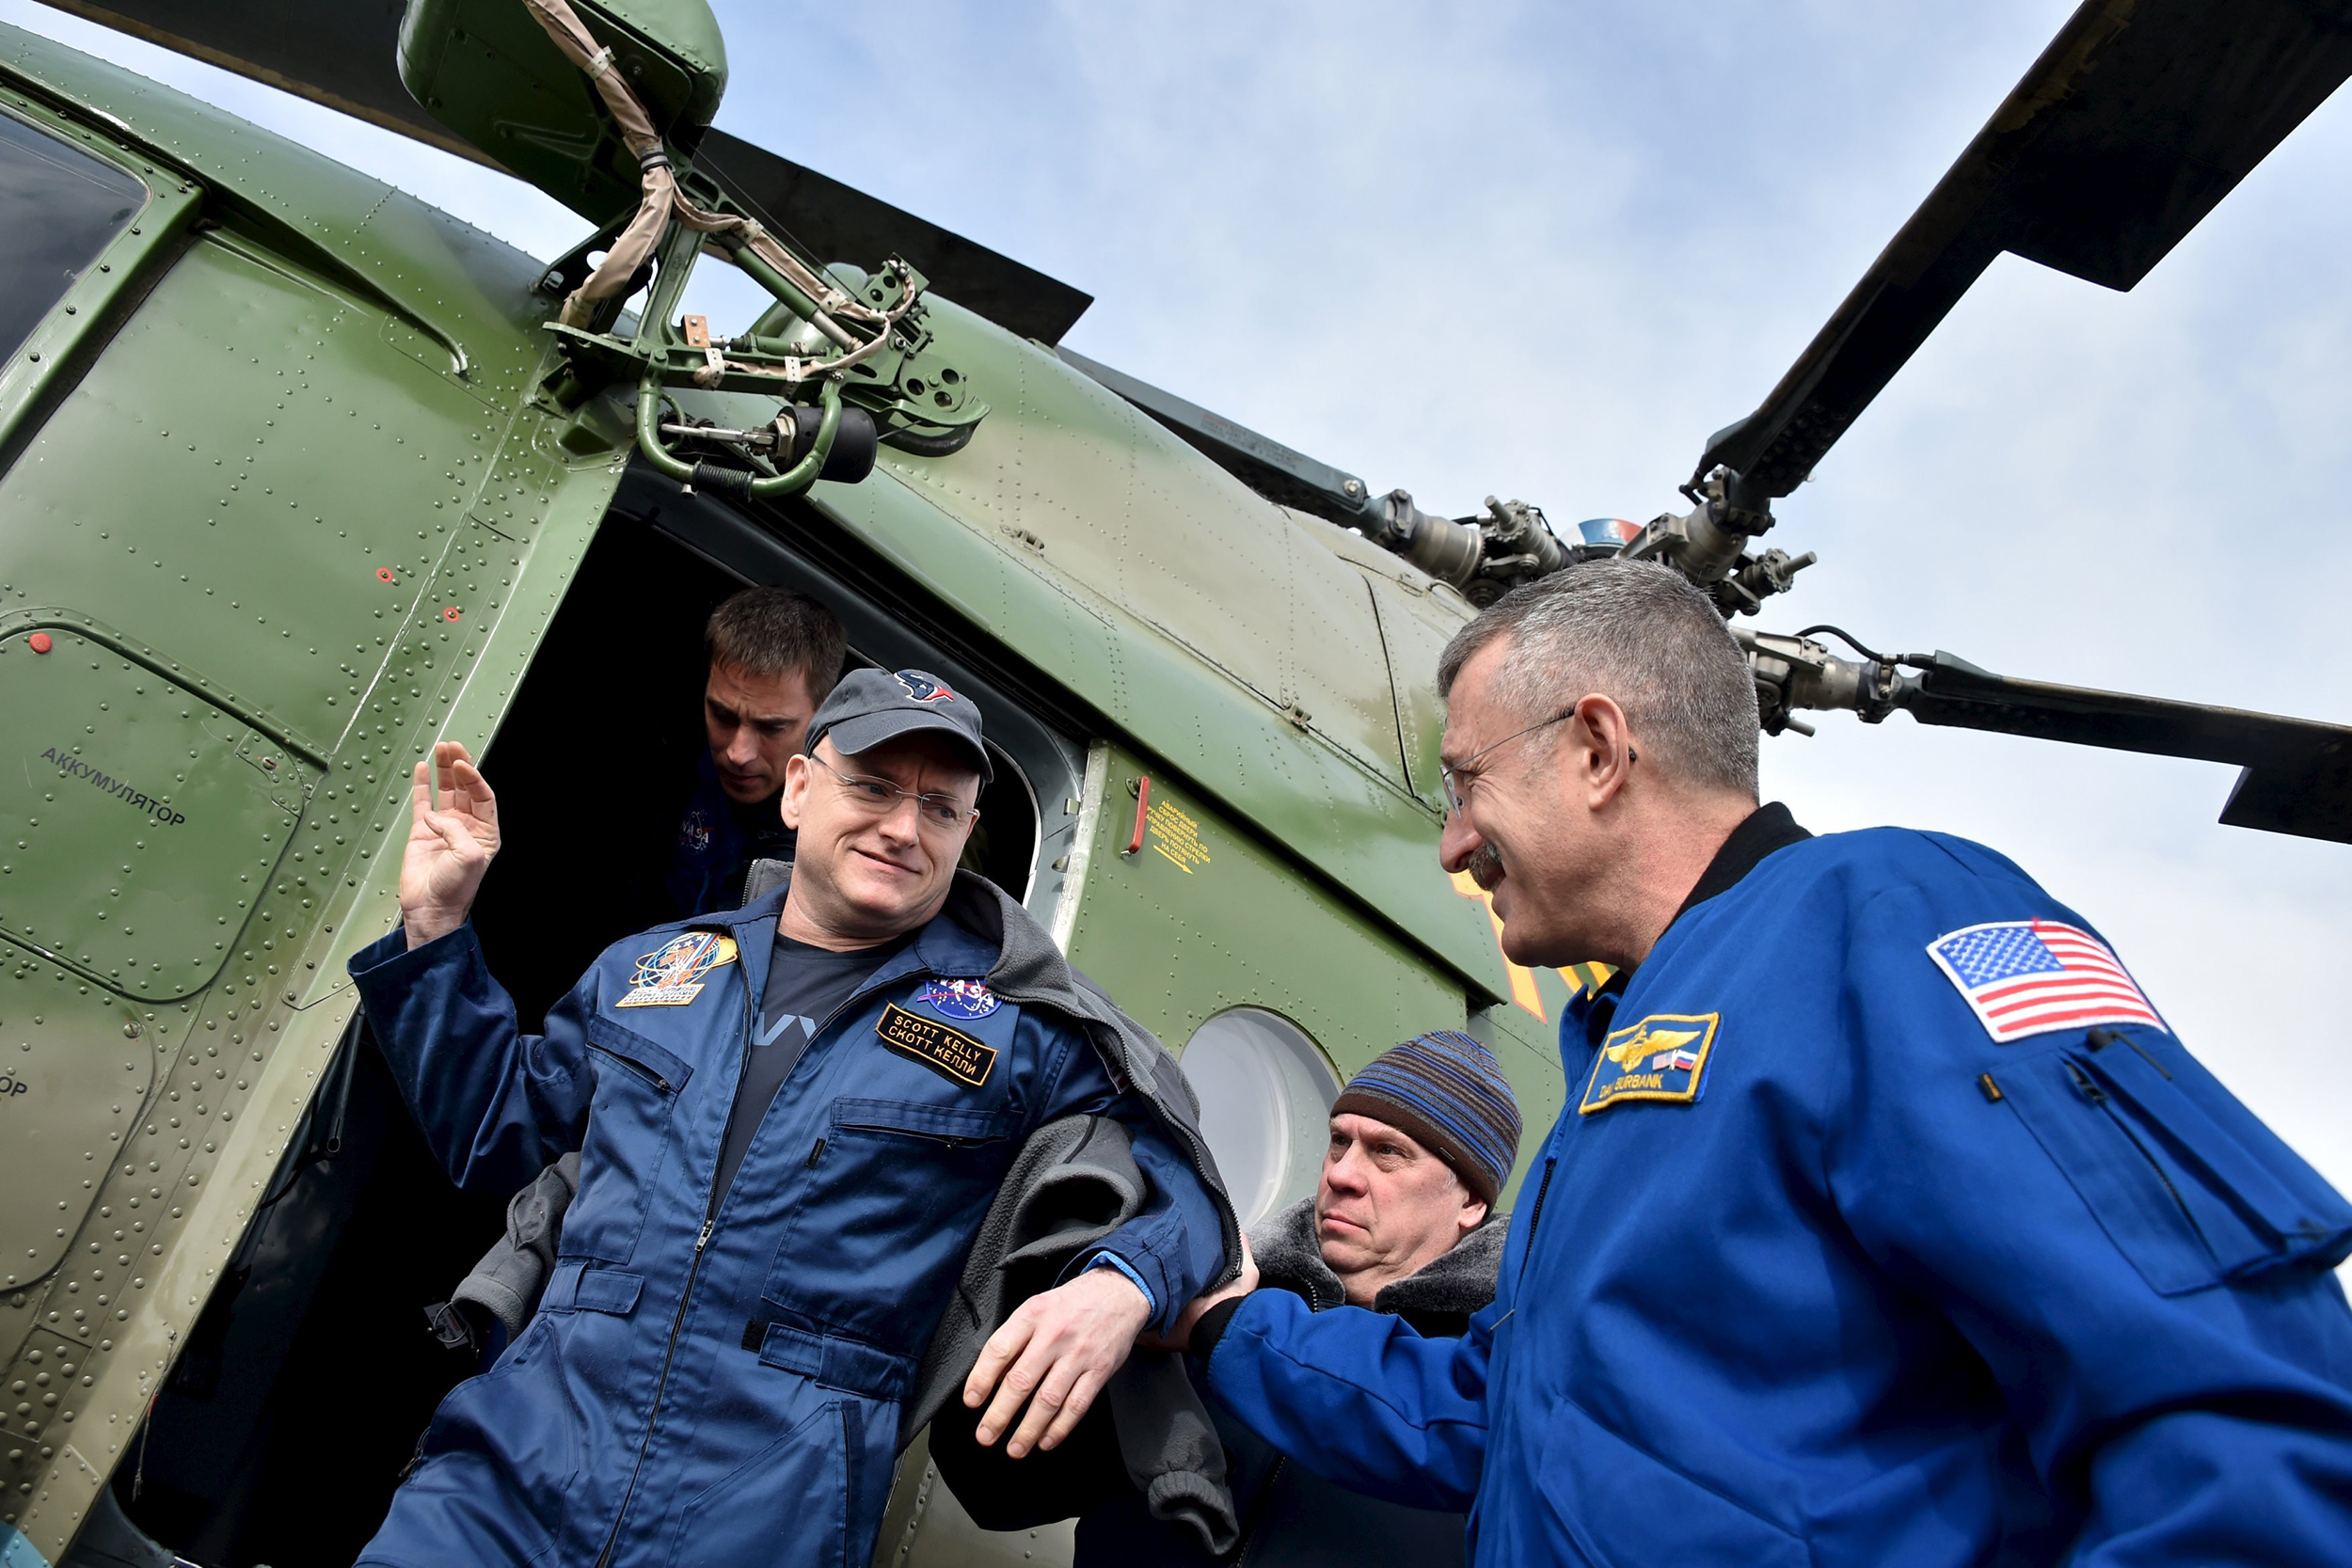 Members of NASA support team help Scott Kelly get off a helicopter at an airport in Zhezkazgan, Kazakhstan on March 2, 2016.